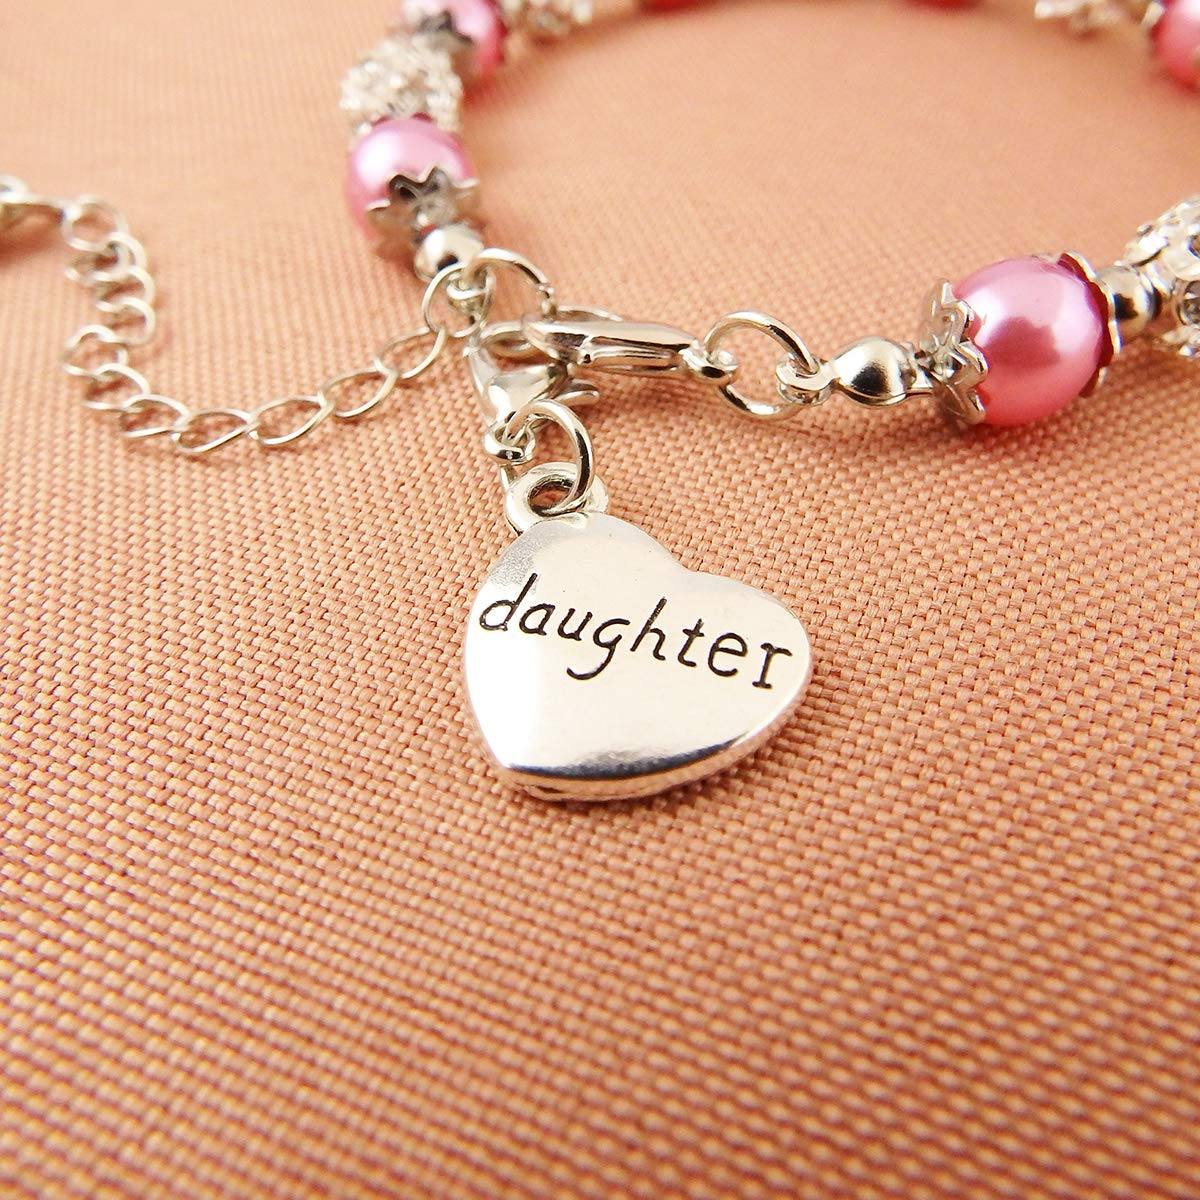 Burning Love Daughter Bracelet Pink Beads Balls Crystal Faux Pearls Charms Wrist Little Girls Jewelry for Girls Birthday Gift